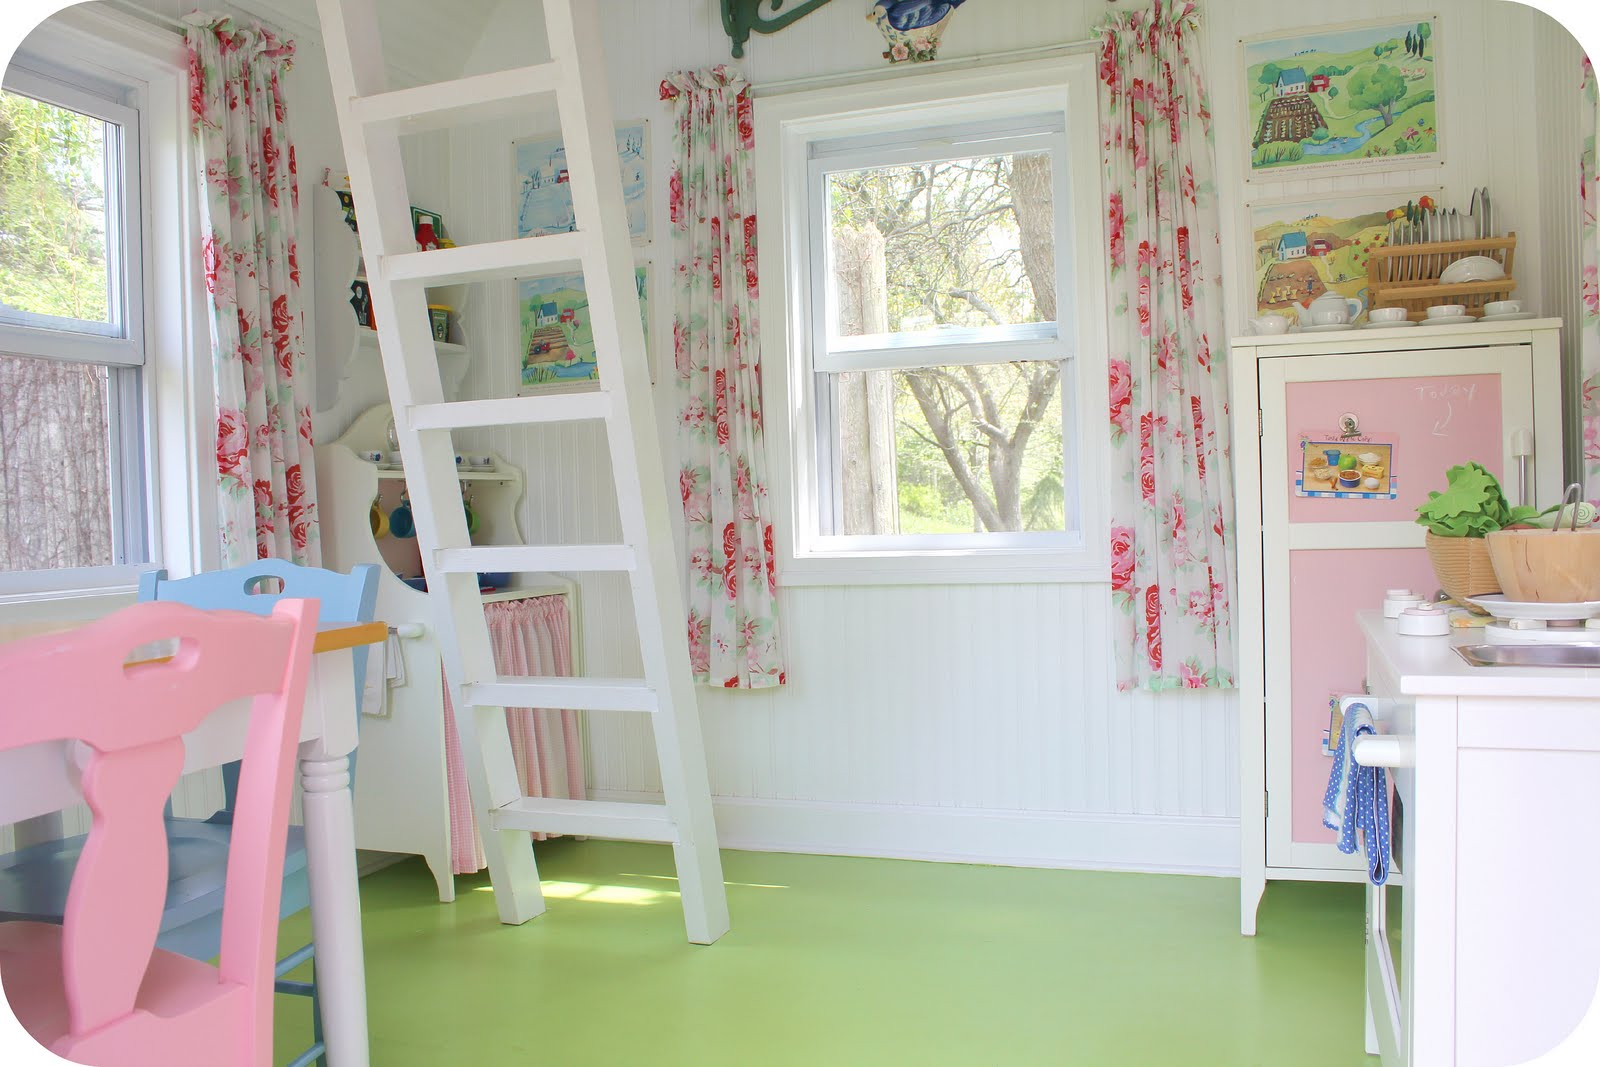 Outdoor dreams finding home farms for Playhouse ideas inside